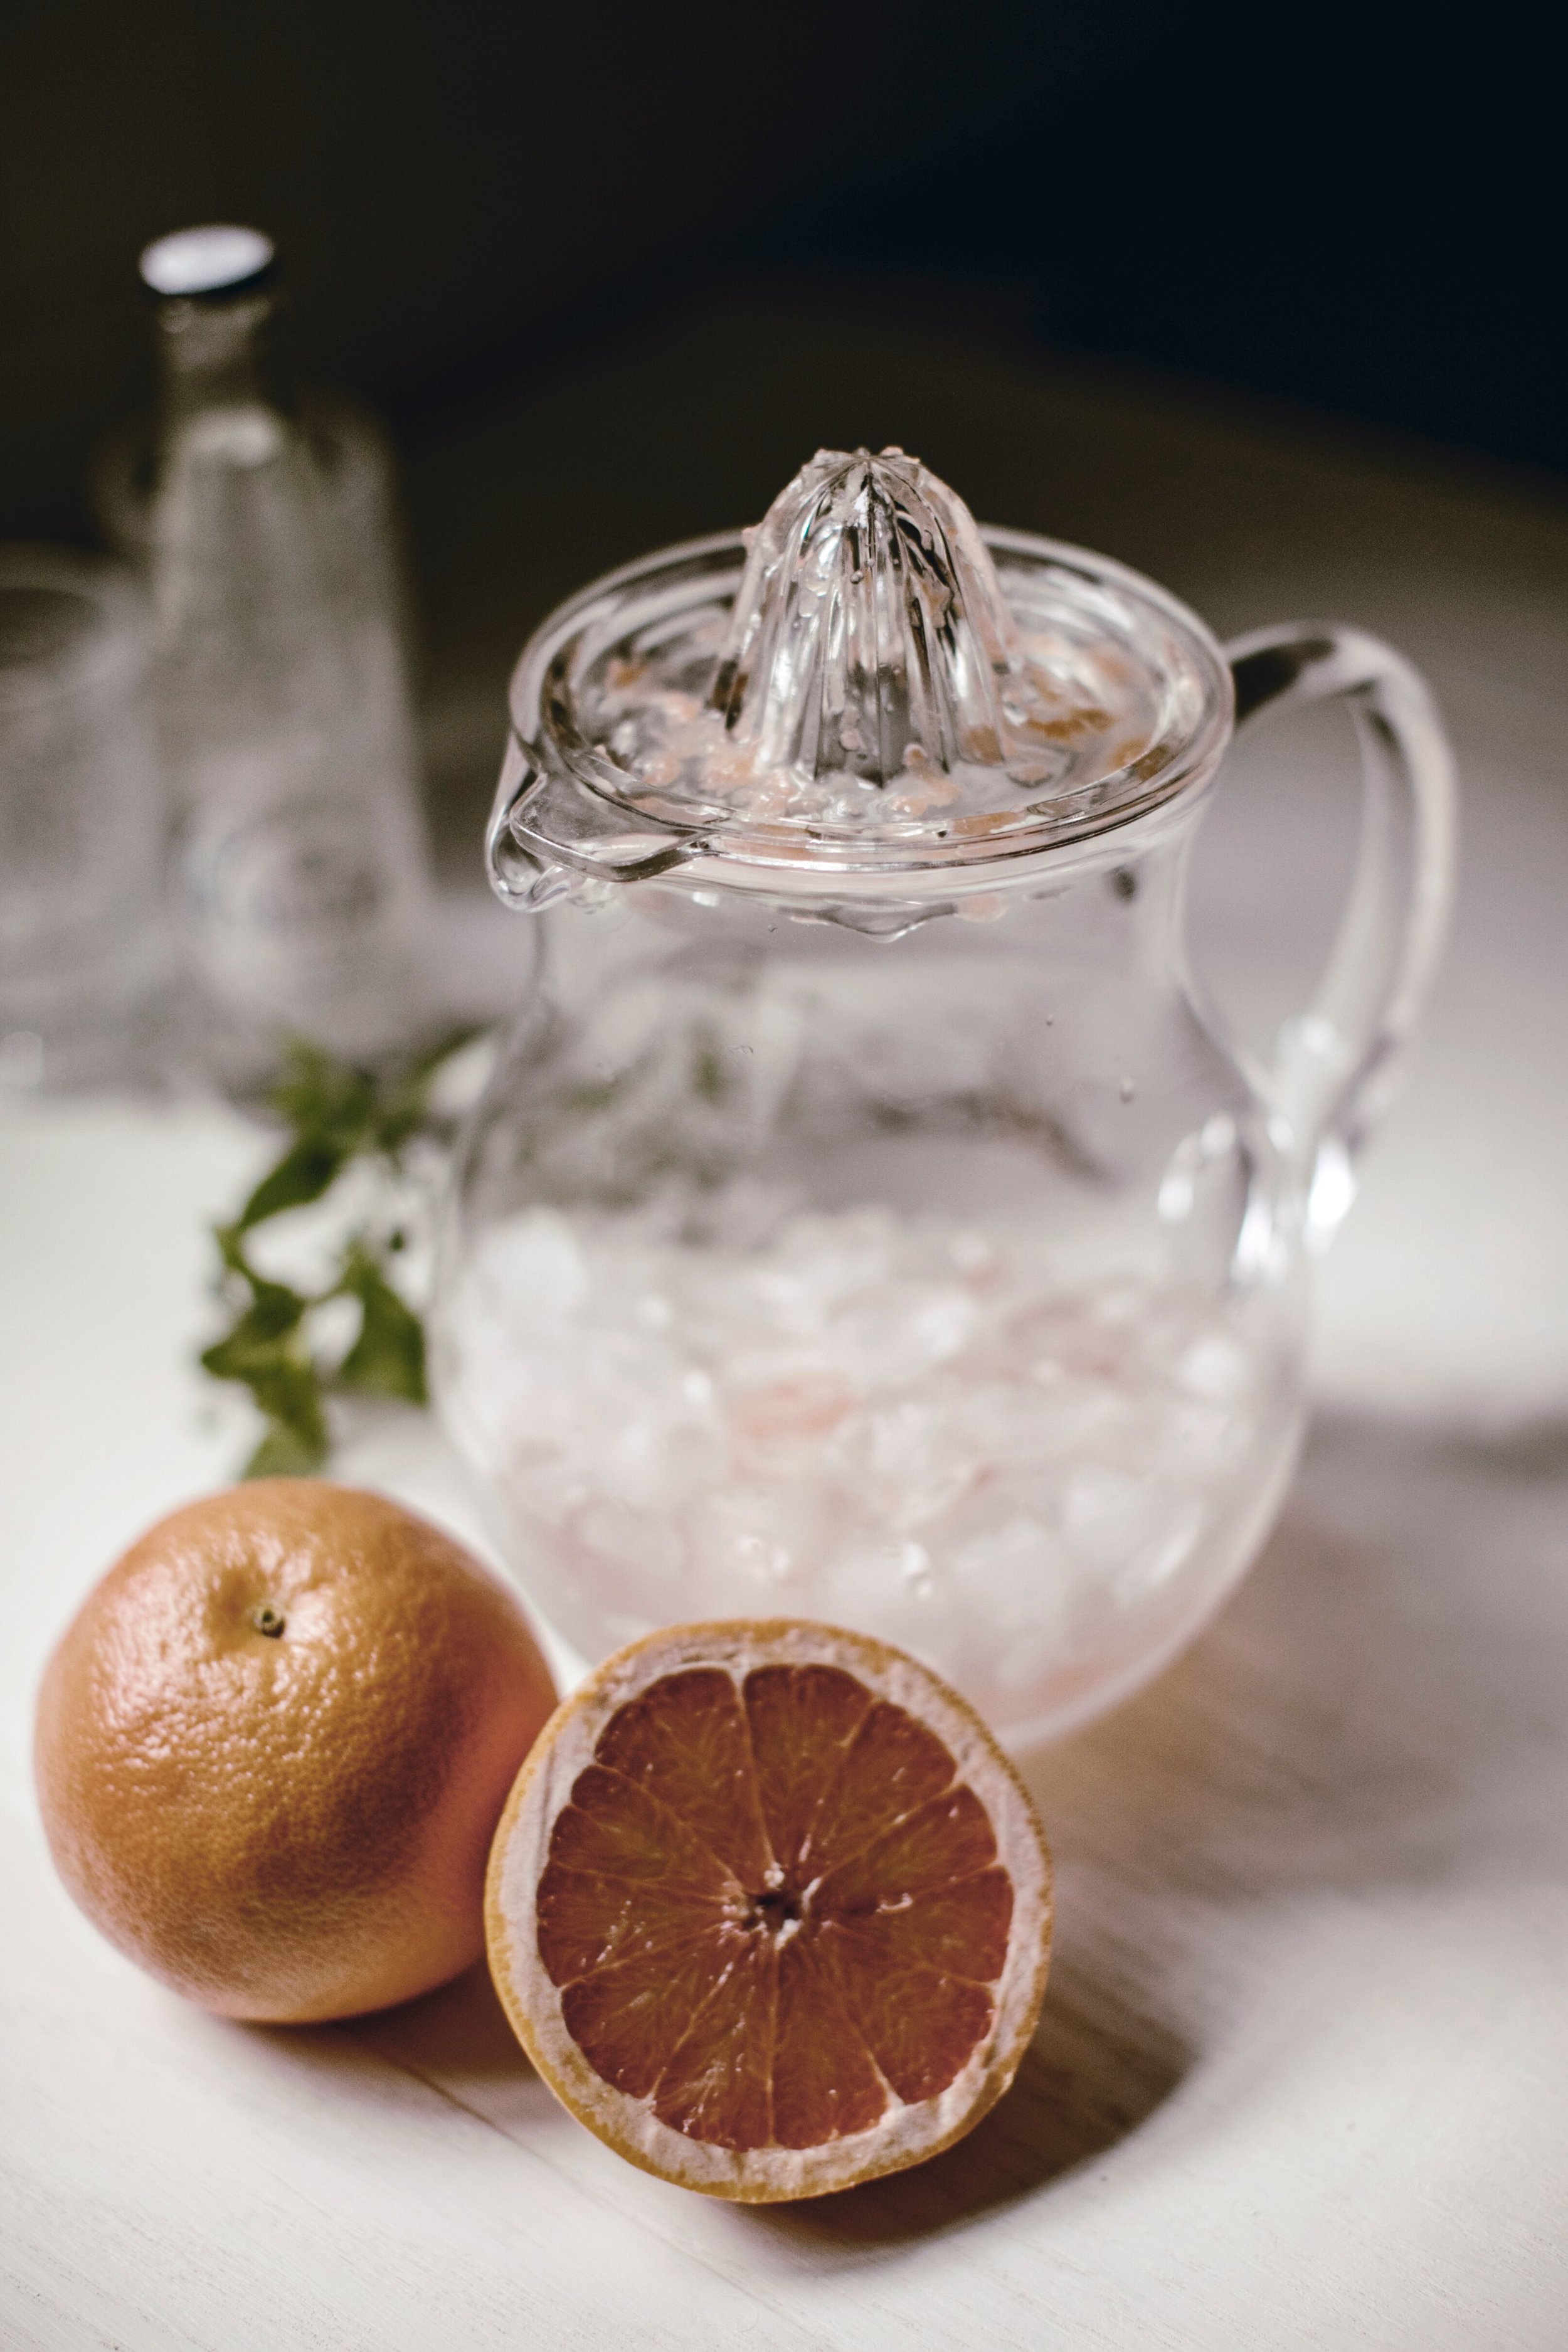 Fresh Grapefruit Juice by heirloomed